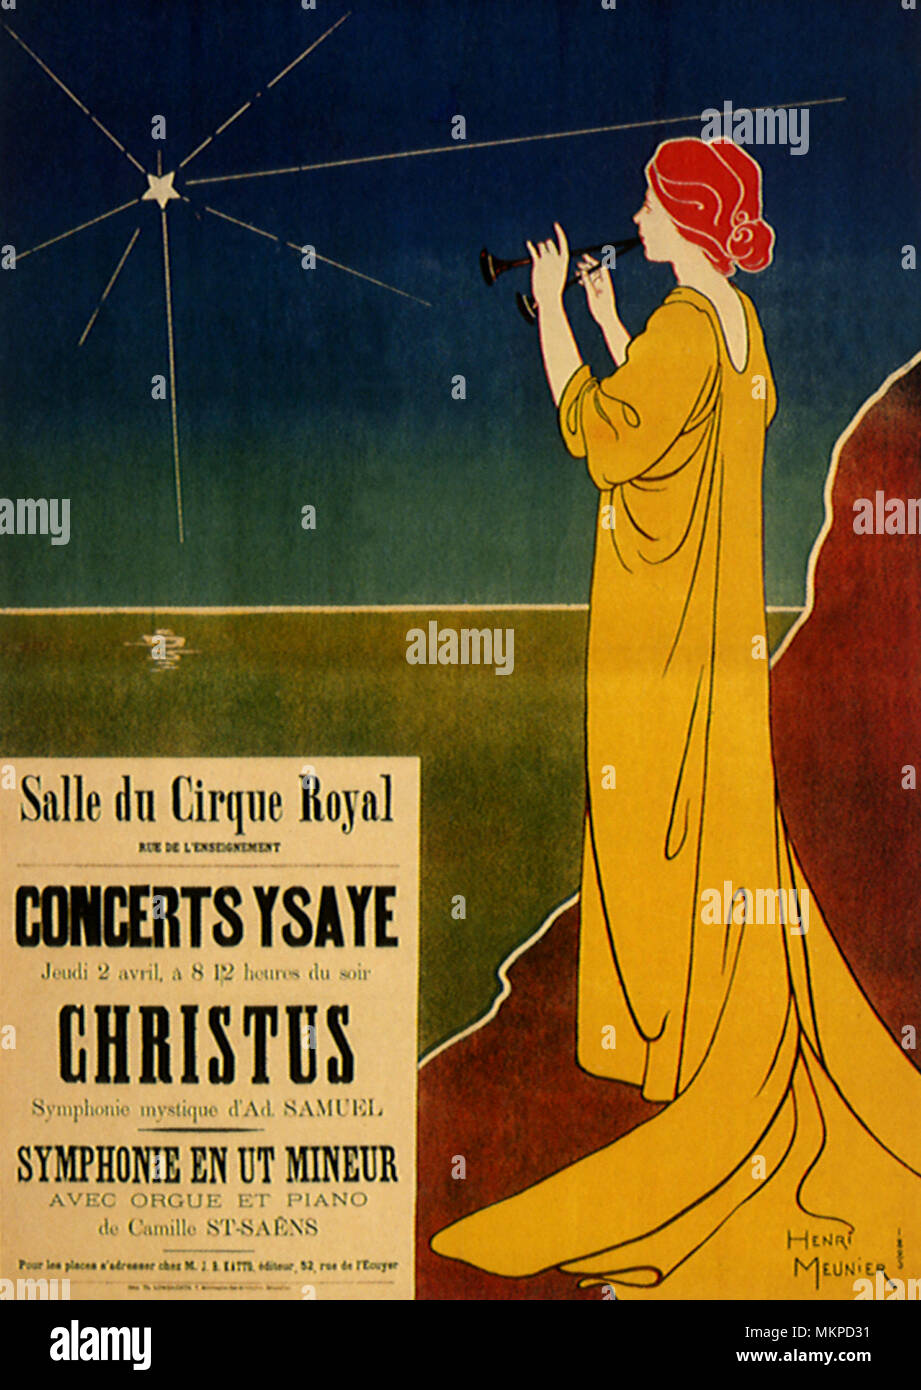 Poster for Concerts Ysaye - Stock Image